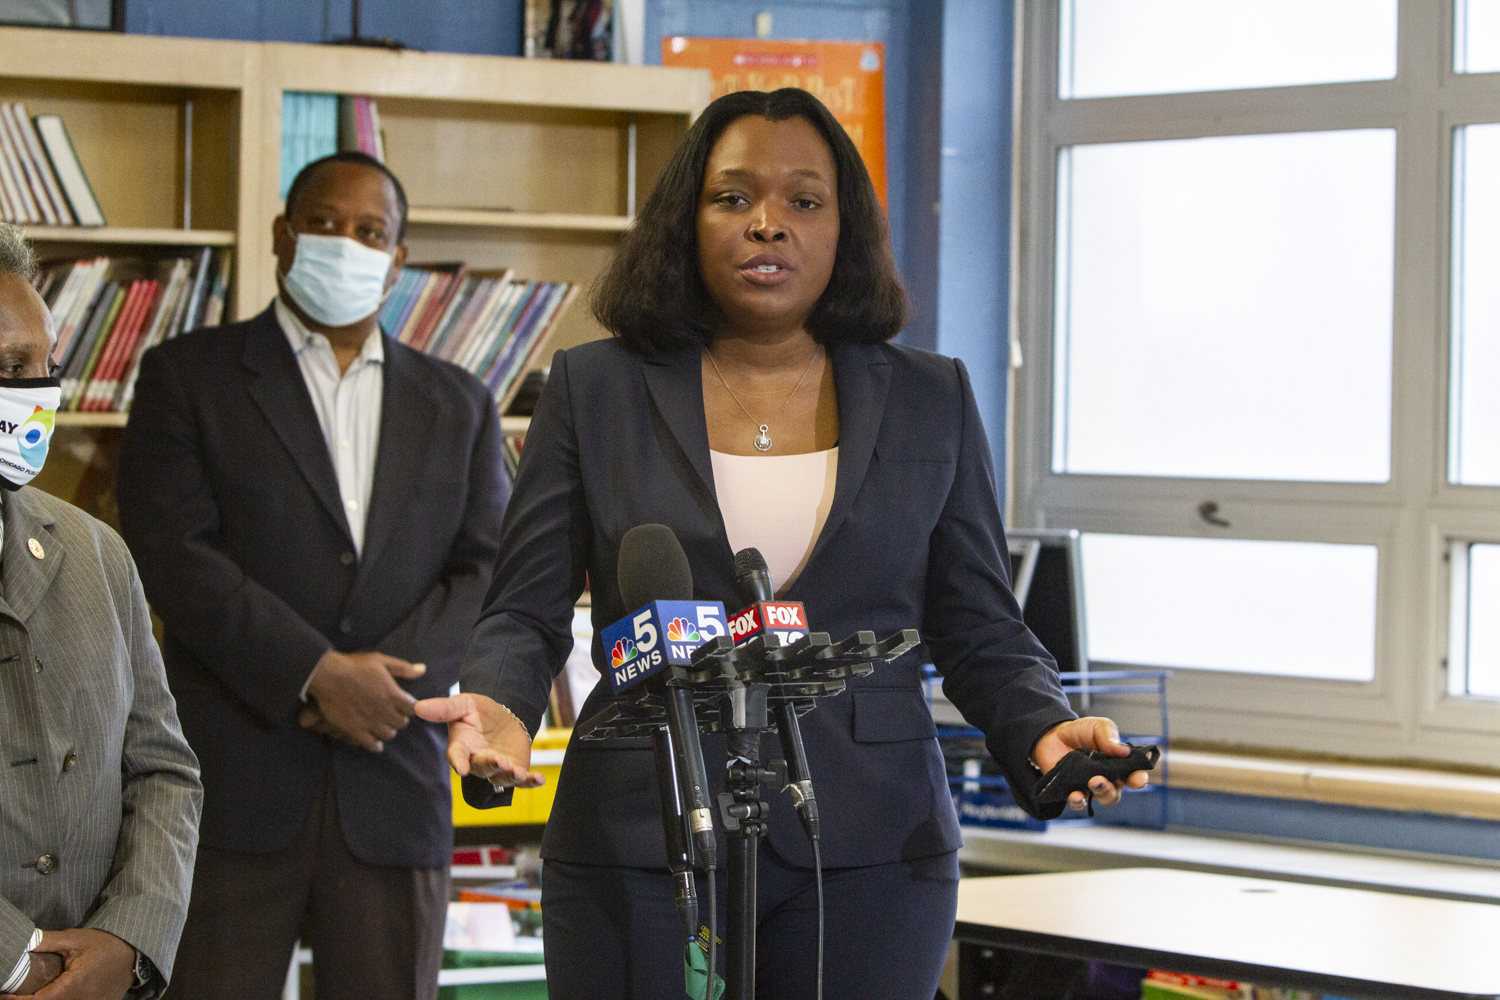 School chief Janice Jackson speaking into microphones at a press conference.